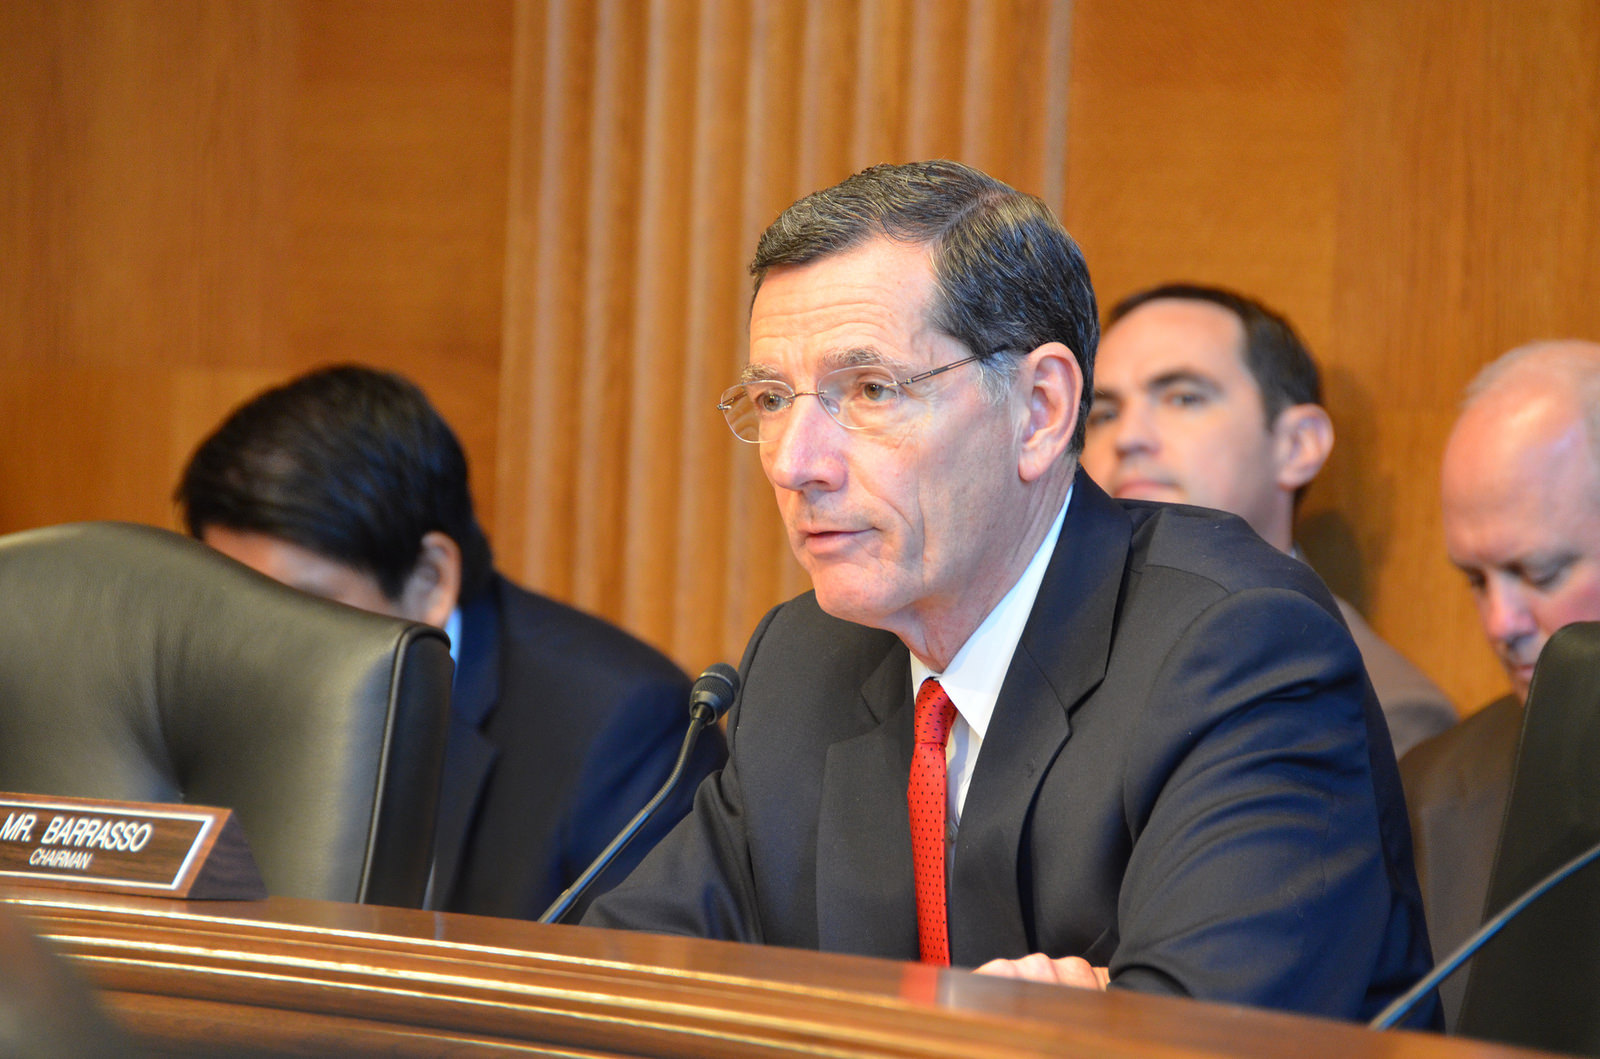 Sen. Barrasso to chair platform committee for GOP convention